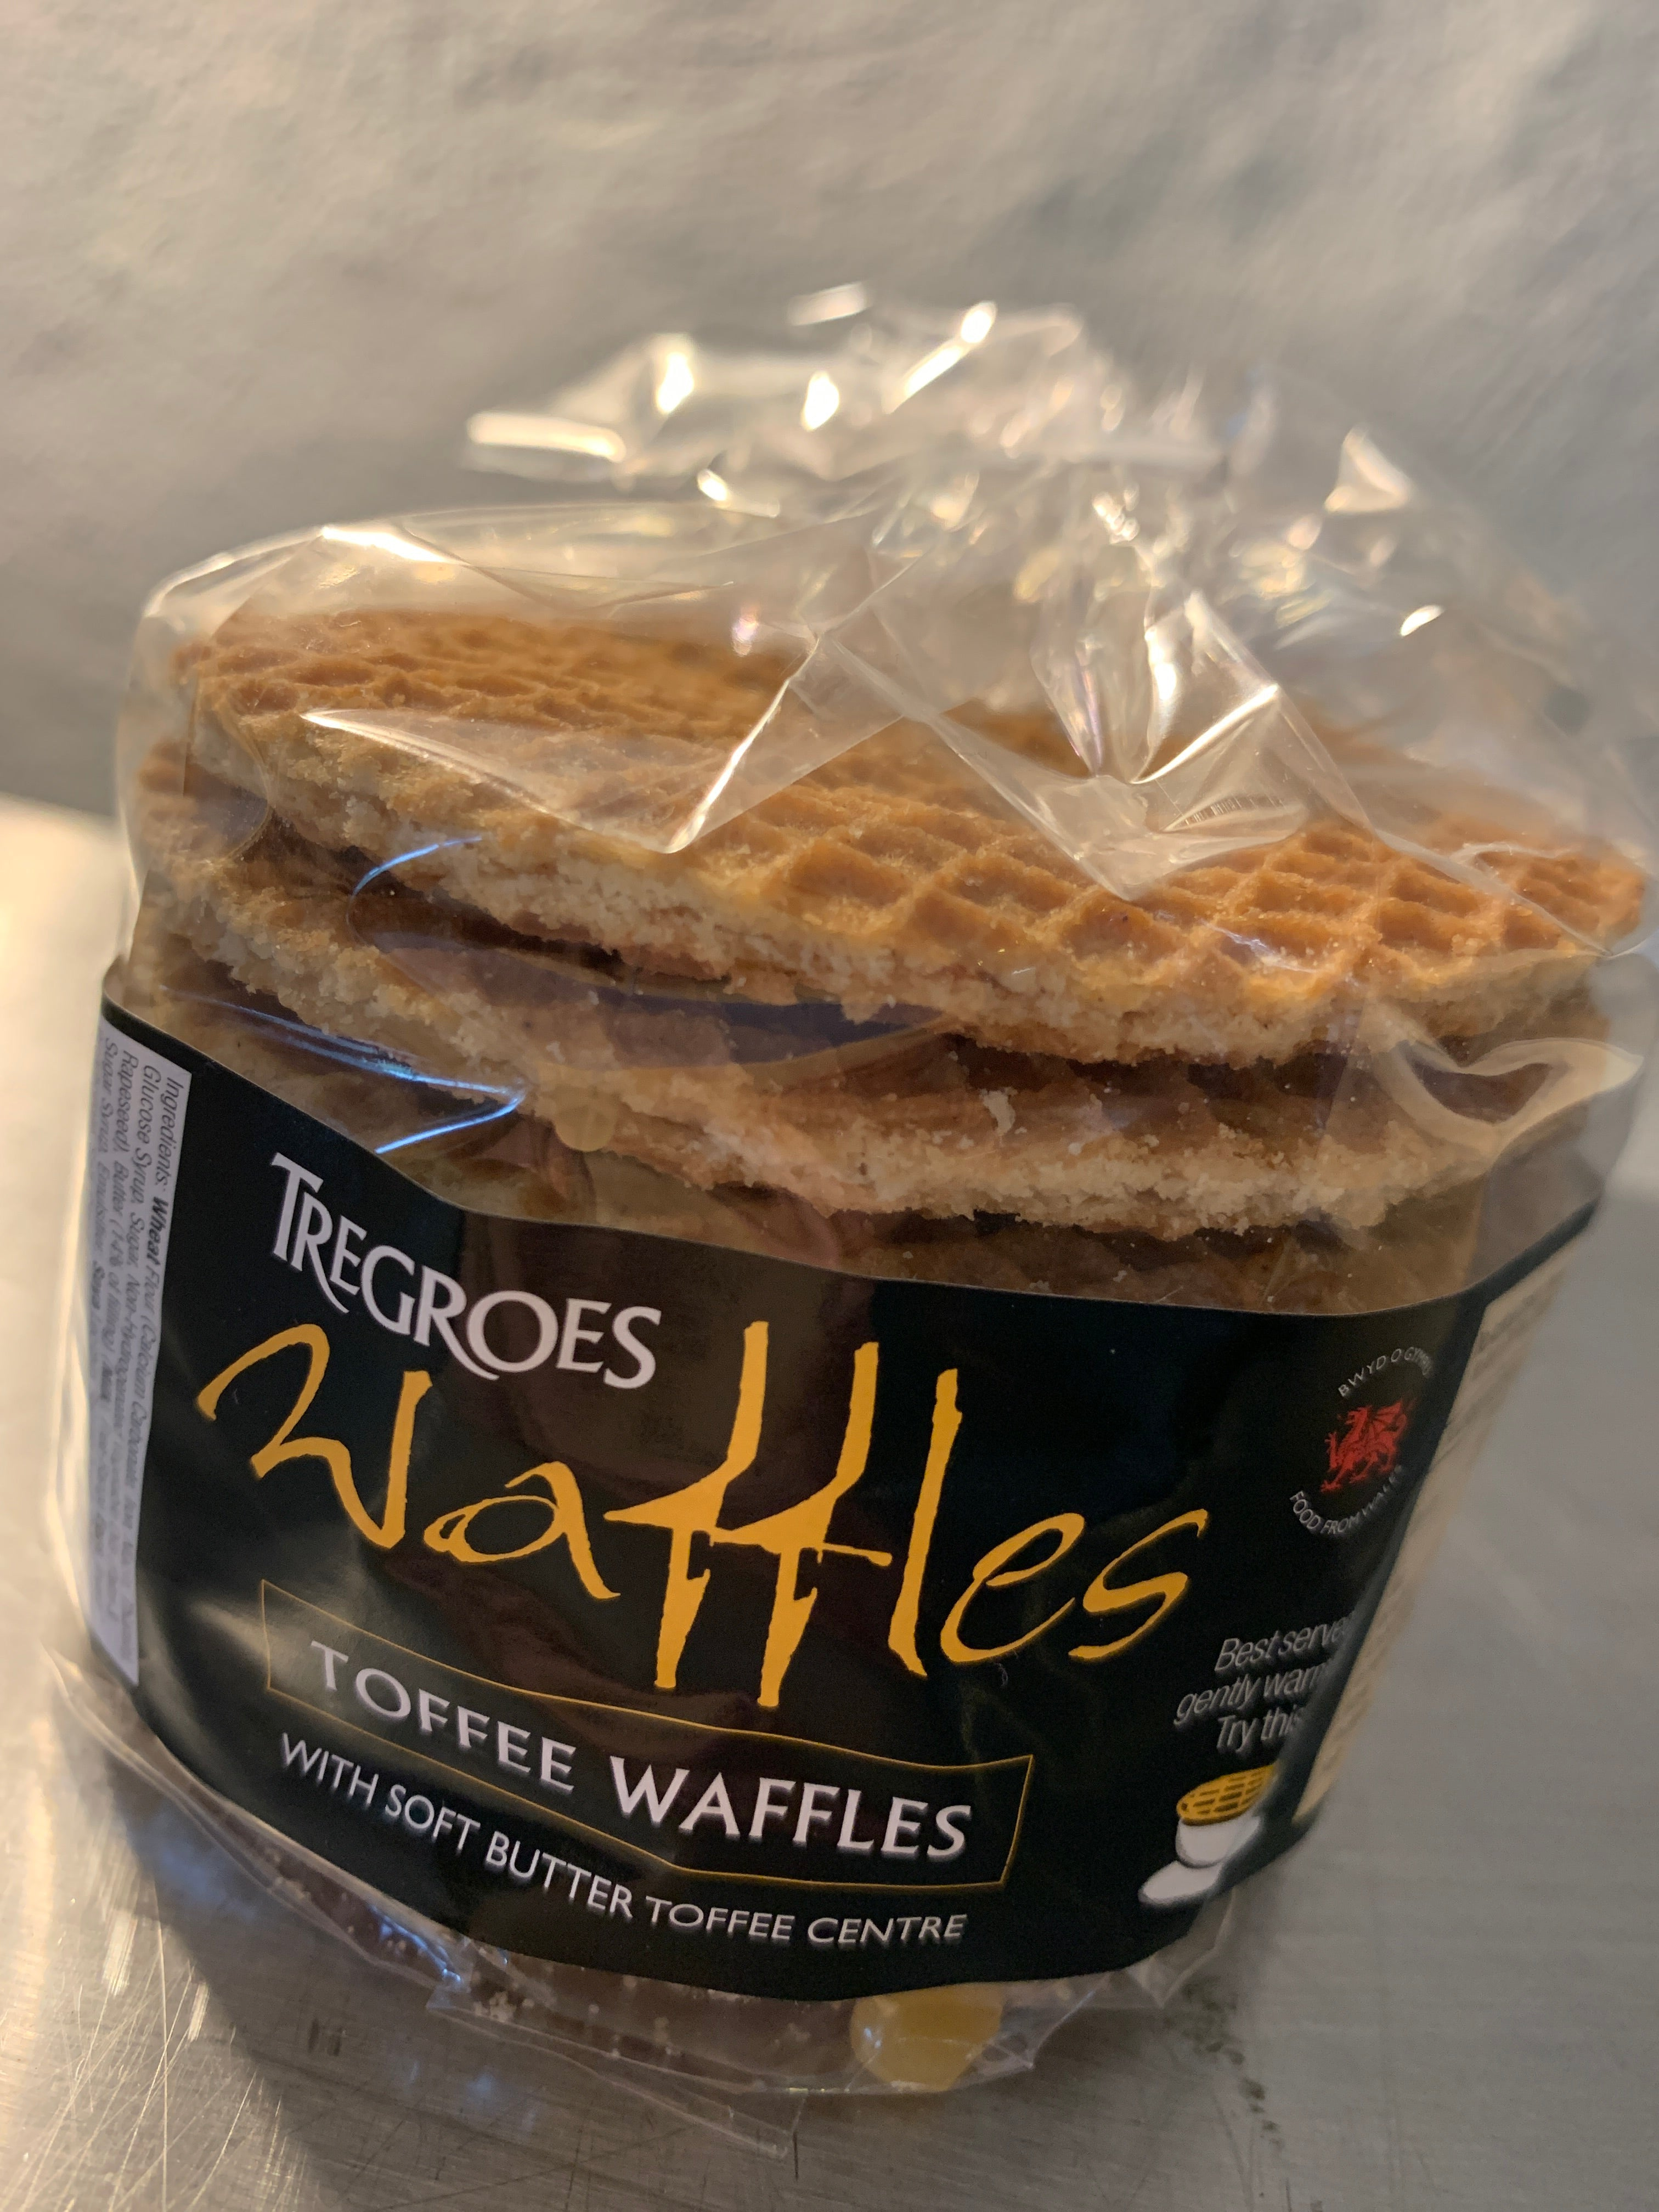 Tregroes Waffles Toffee